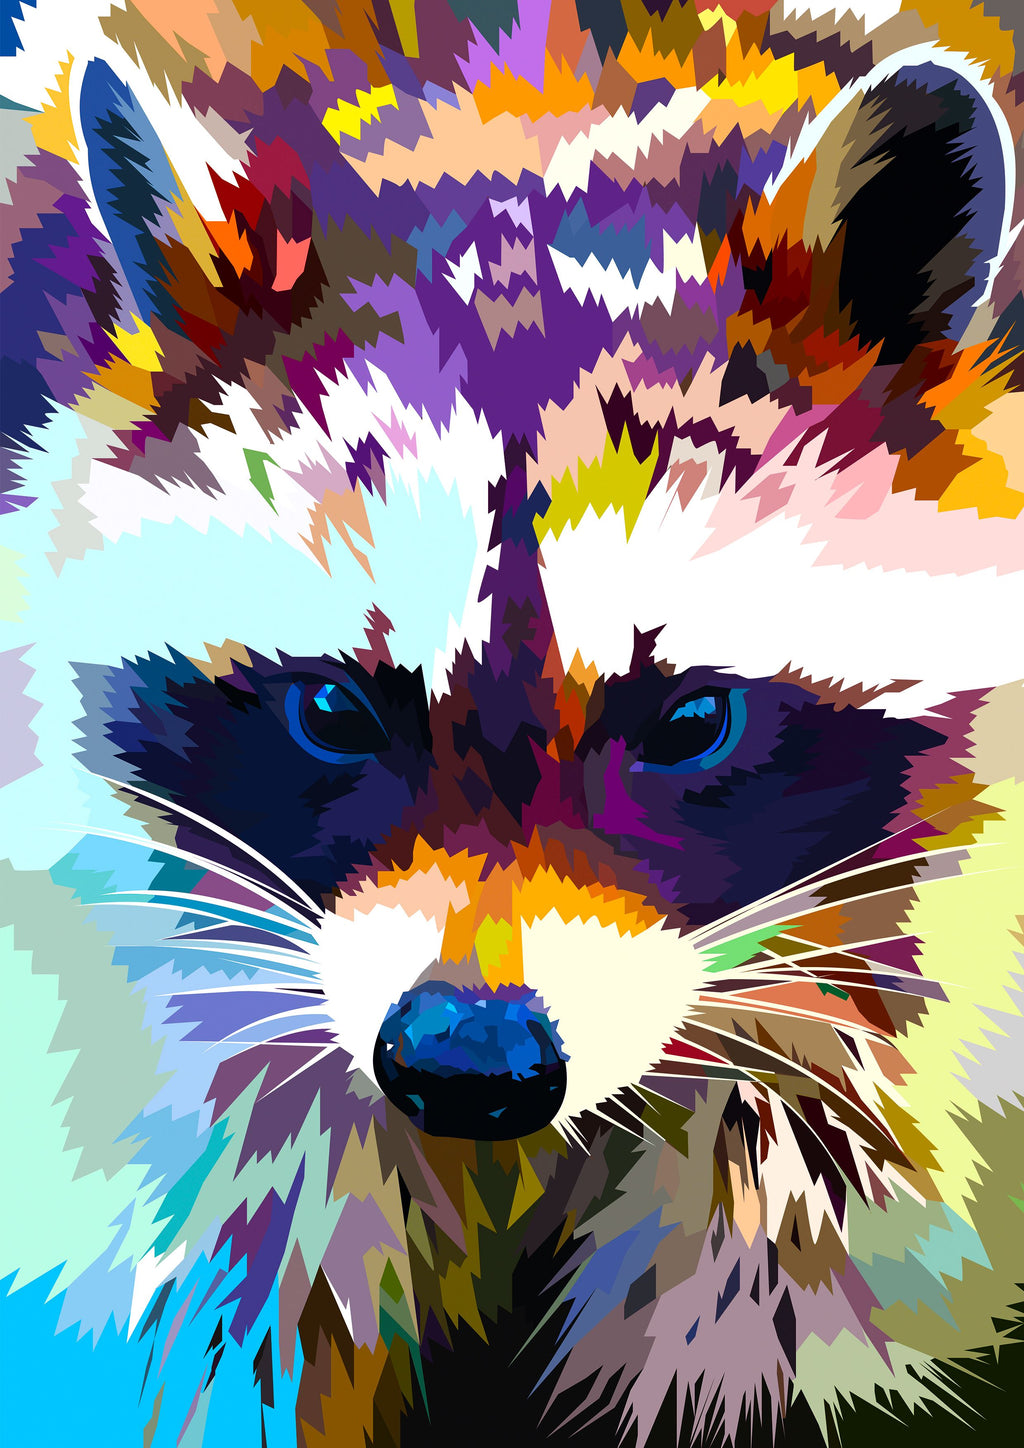 EXCLUSIVE Elvira Clement - Raccoon - The Diamond Painting Factory